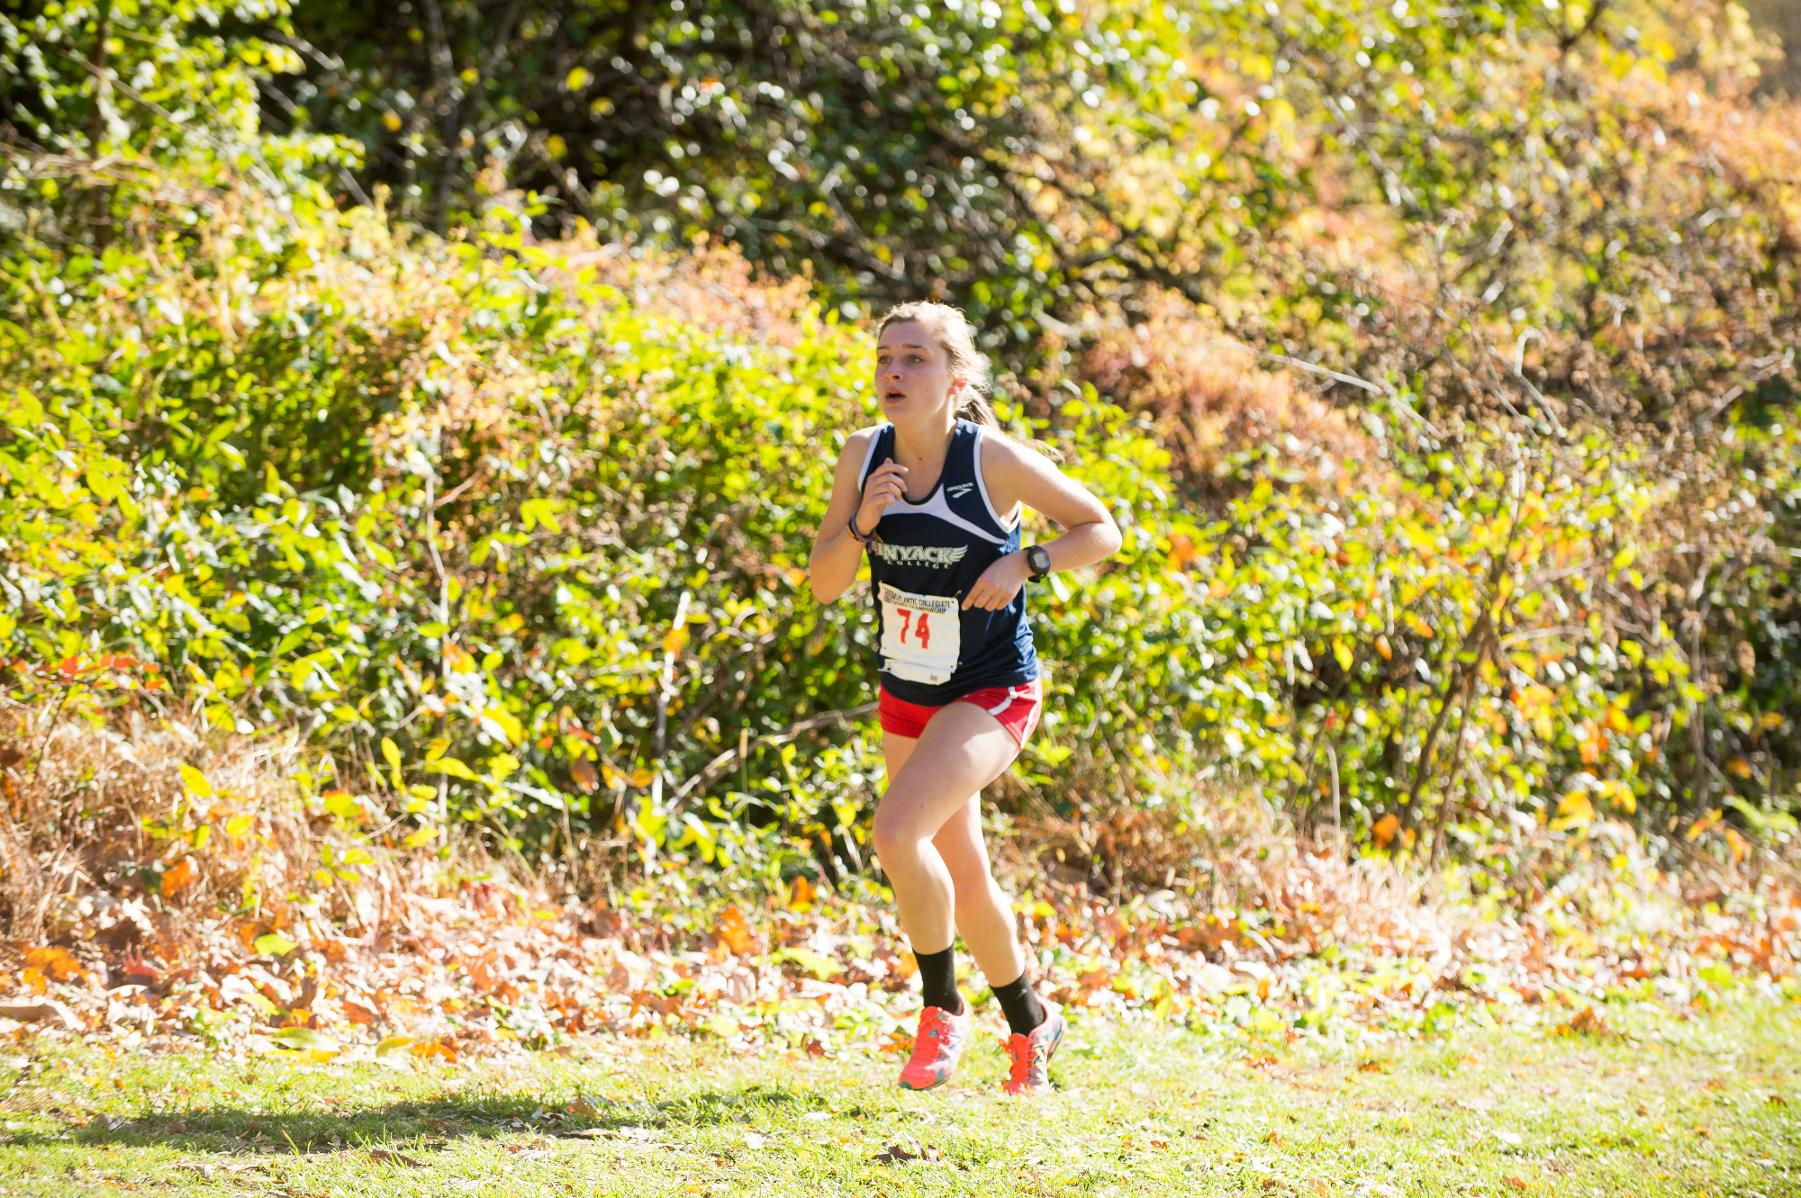 Nash finishes second at Philadelphia Metropolitan Championship